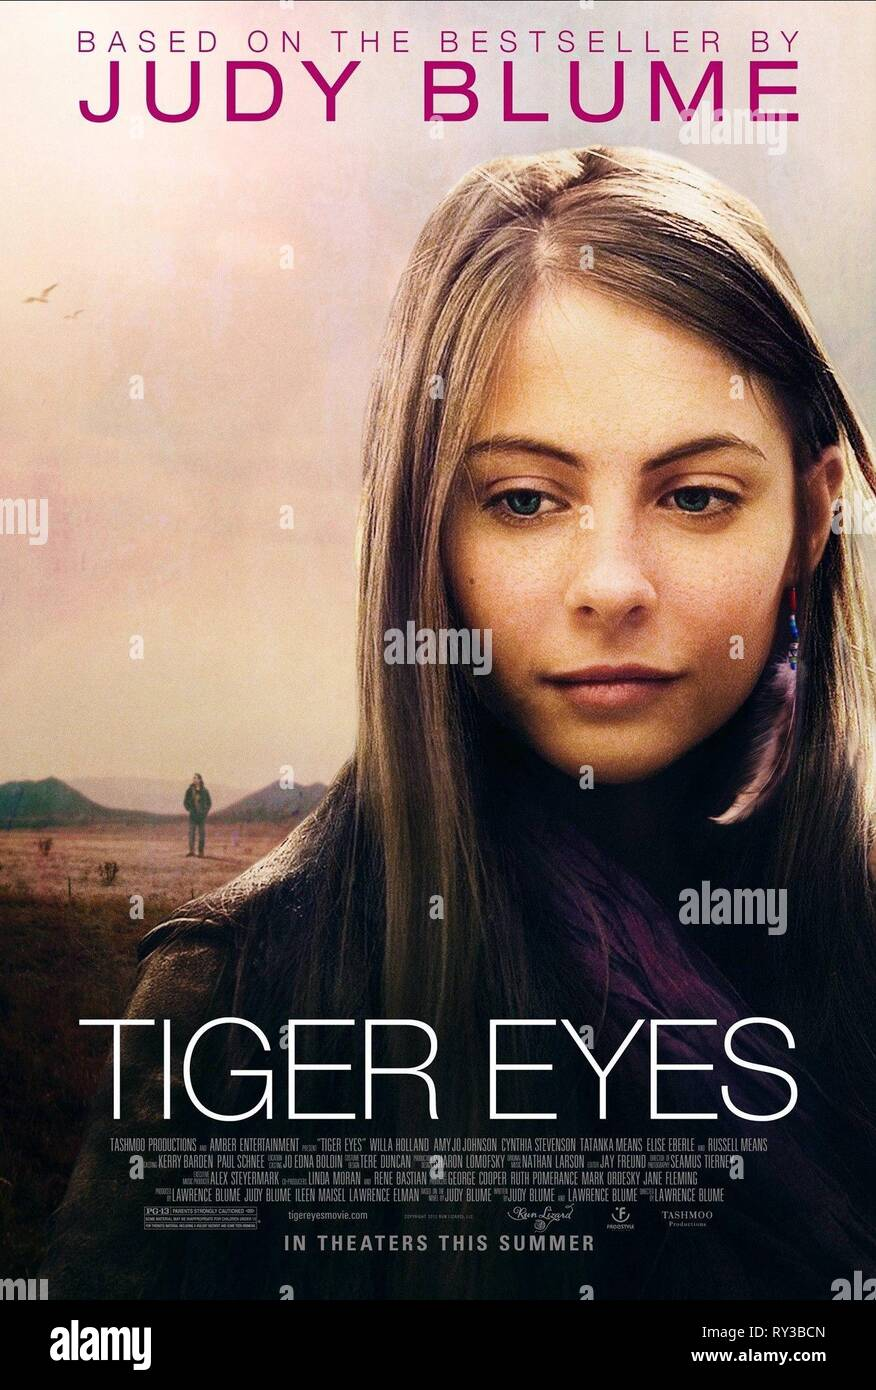 WILLA HOLLAND POSTER, TIGER EYES, 2012 - Stock Image